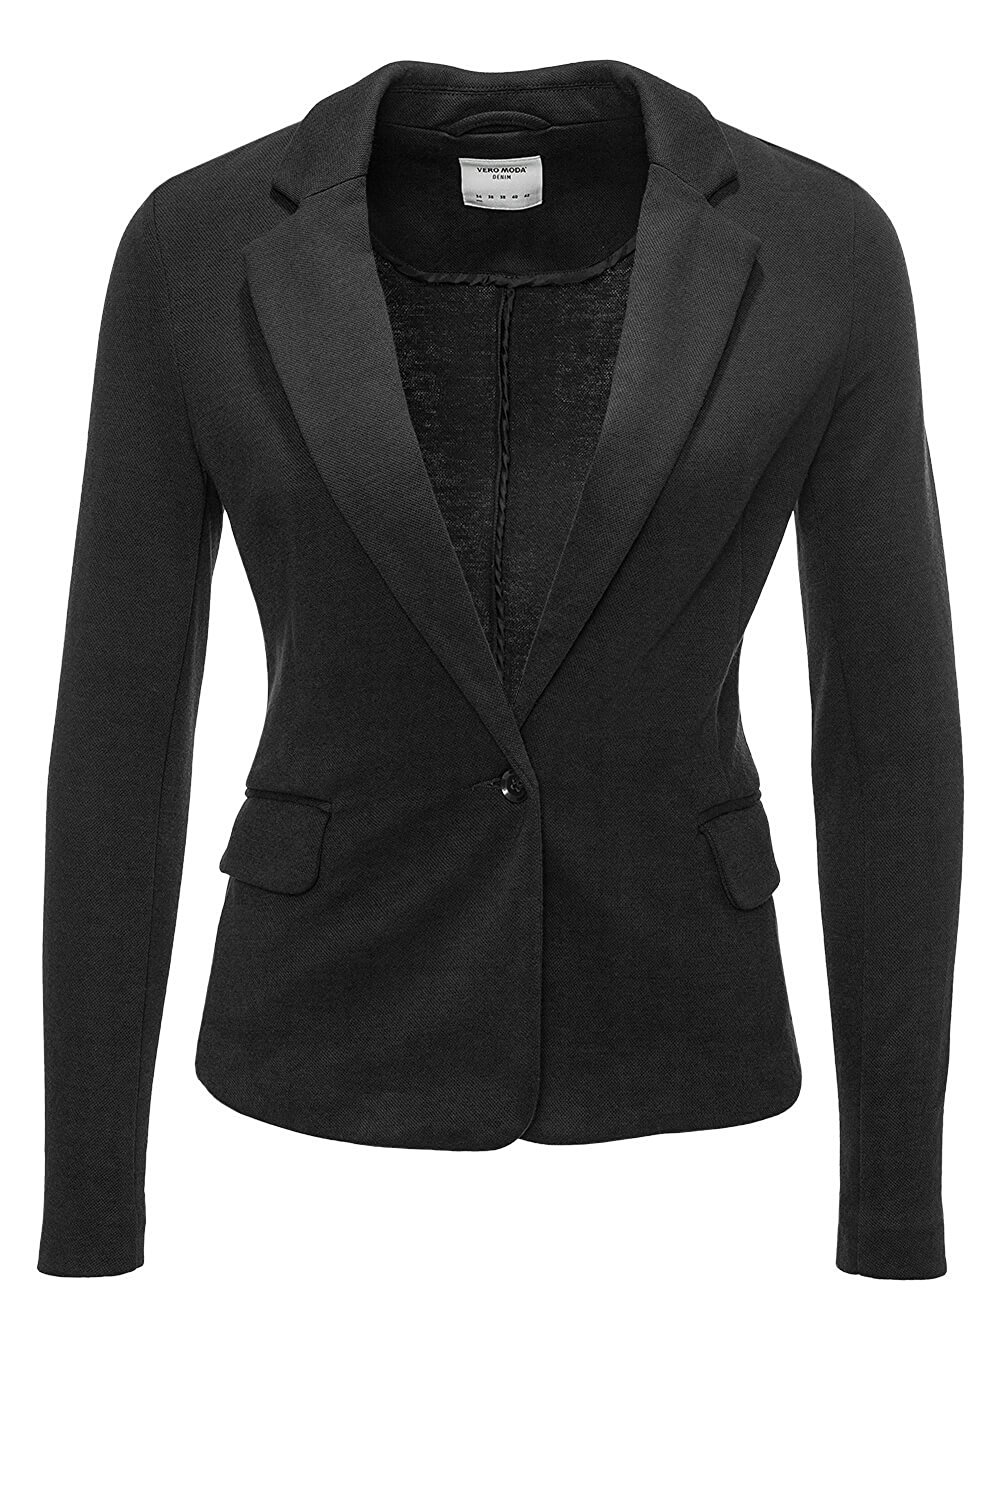 vero moda jersey damen blazer sakko business elegant b ro anzug schwarz xs xl ebay. Black Bedroom Furniture Sets. Home Design Ideas